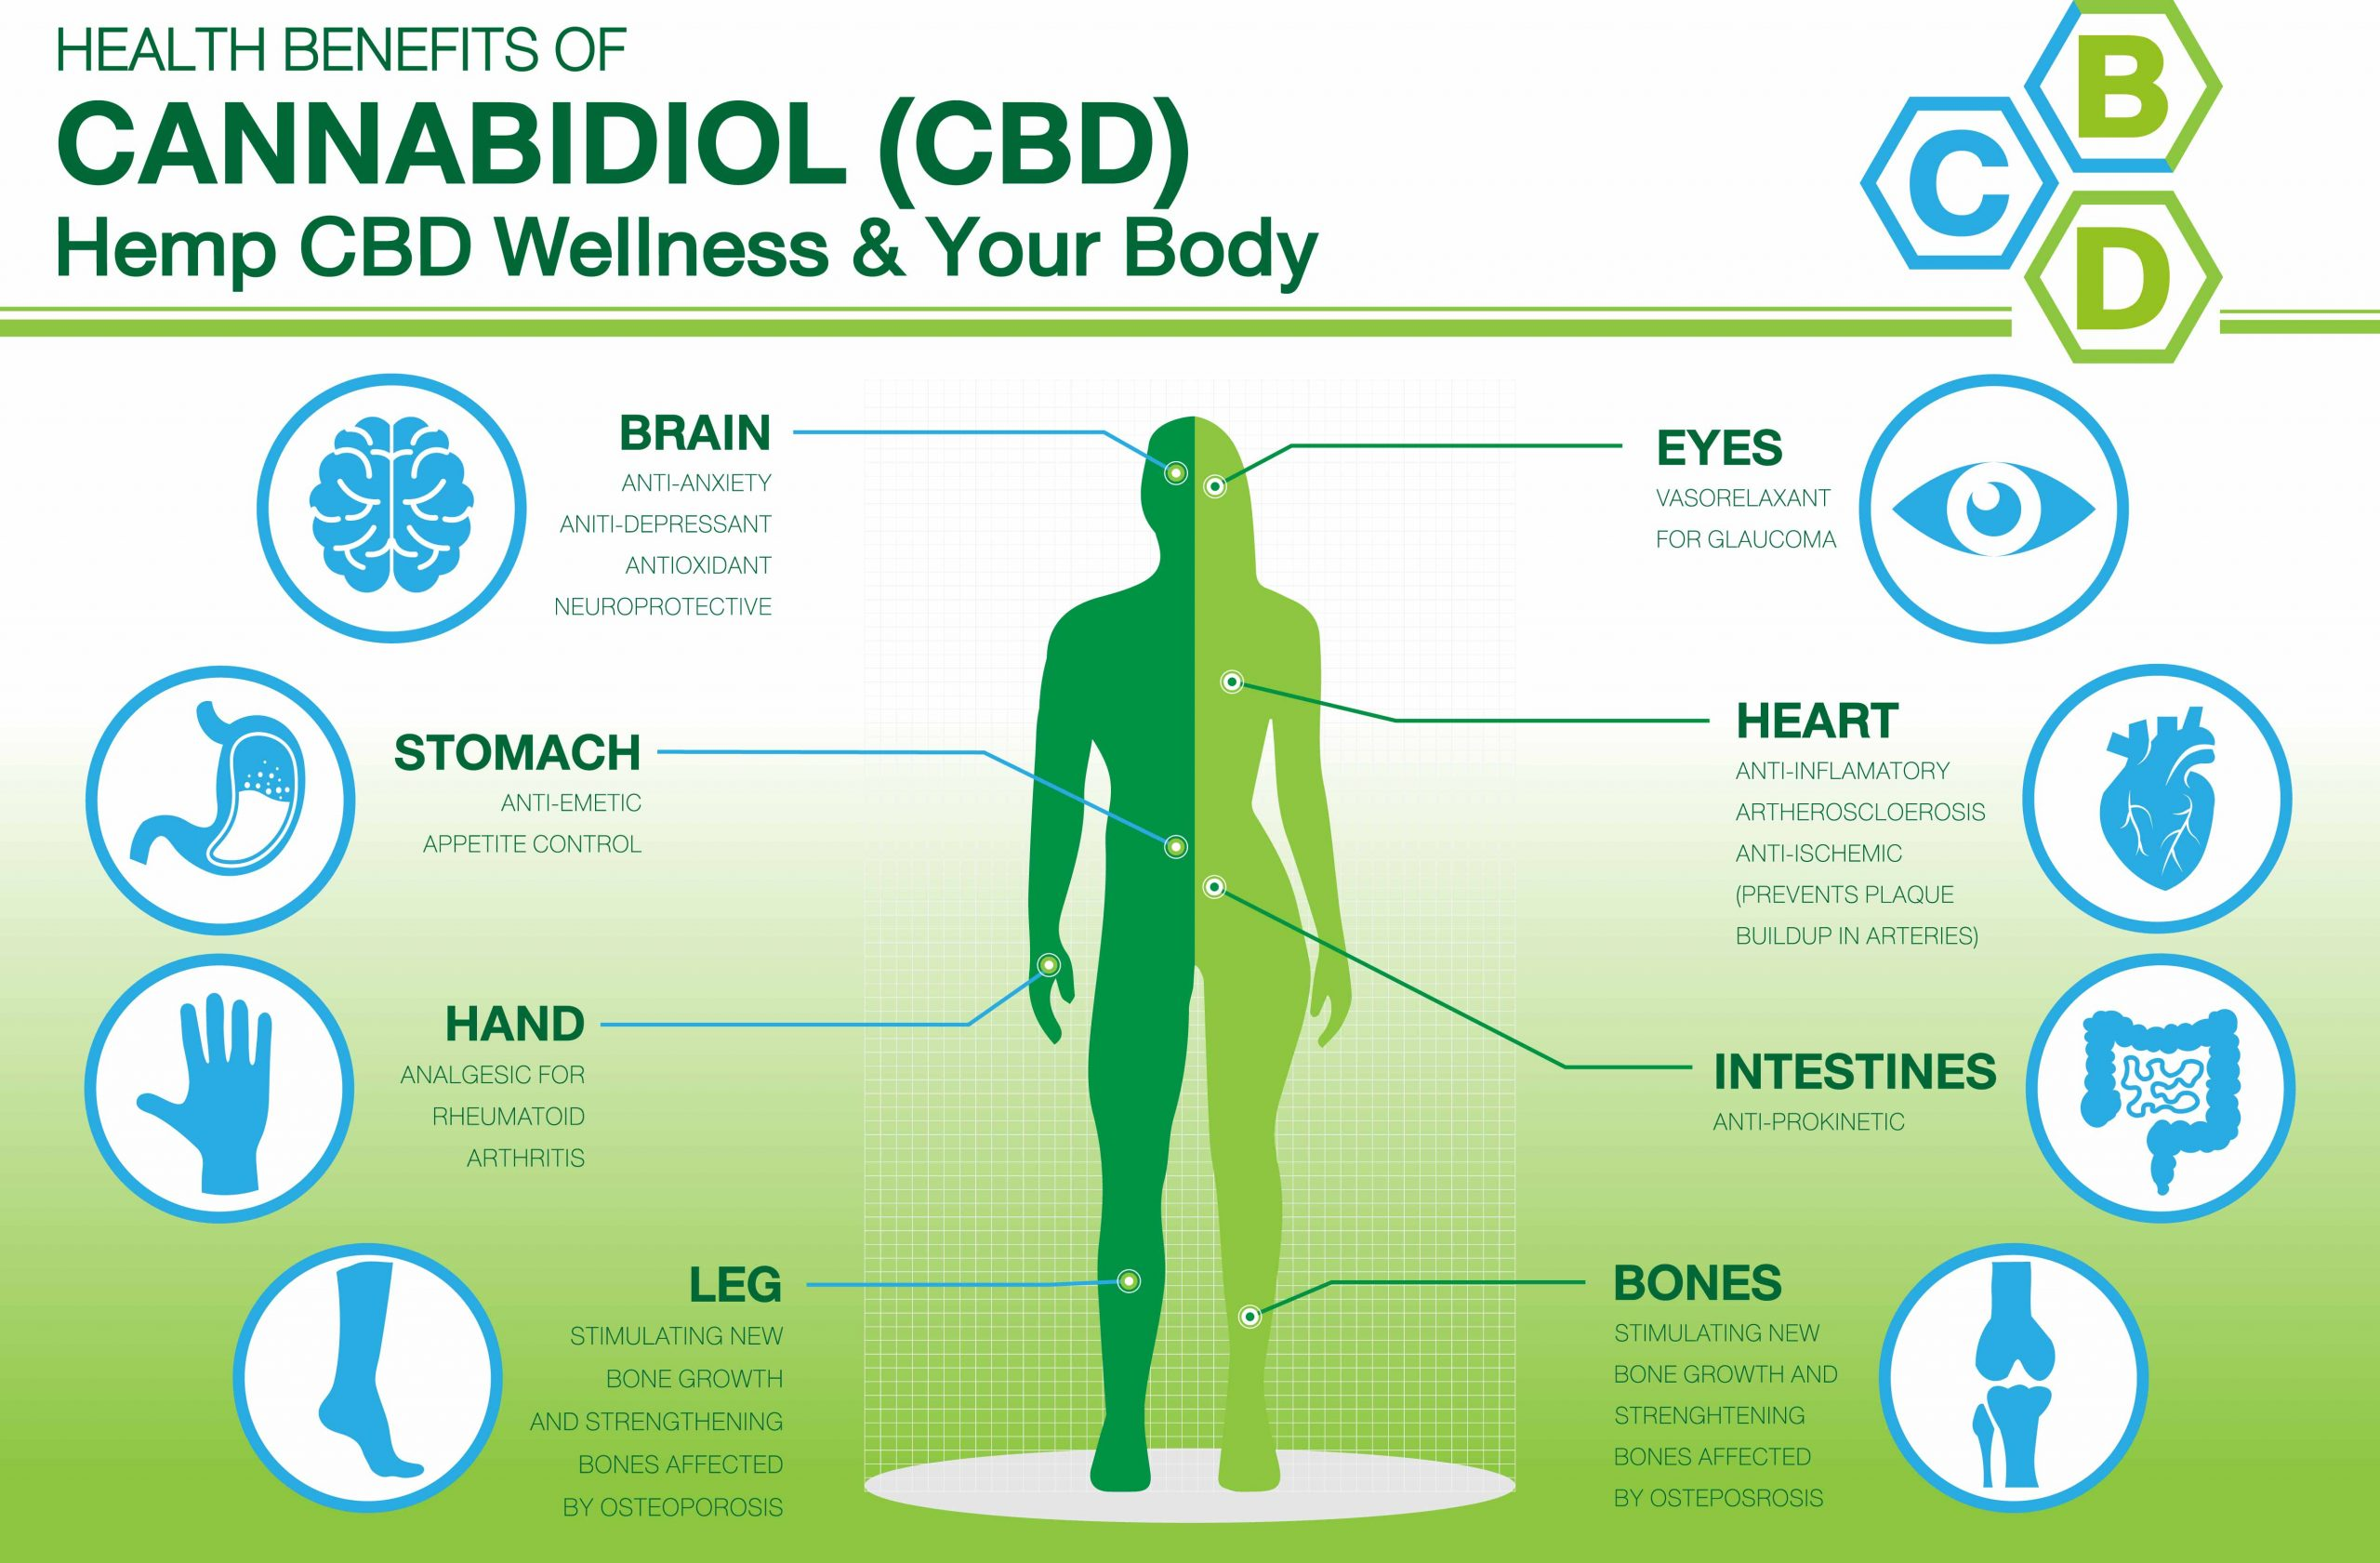 How CBD Effects the body